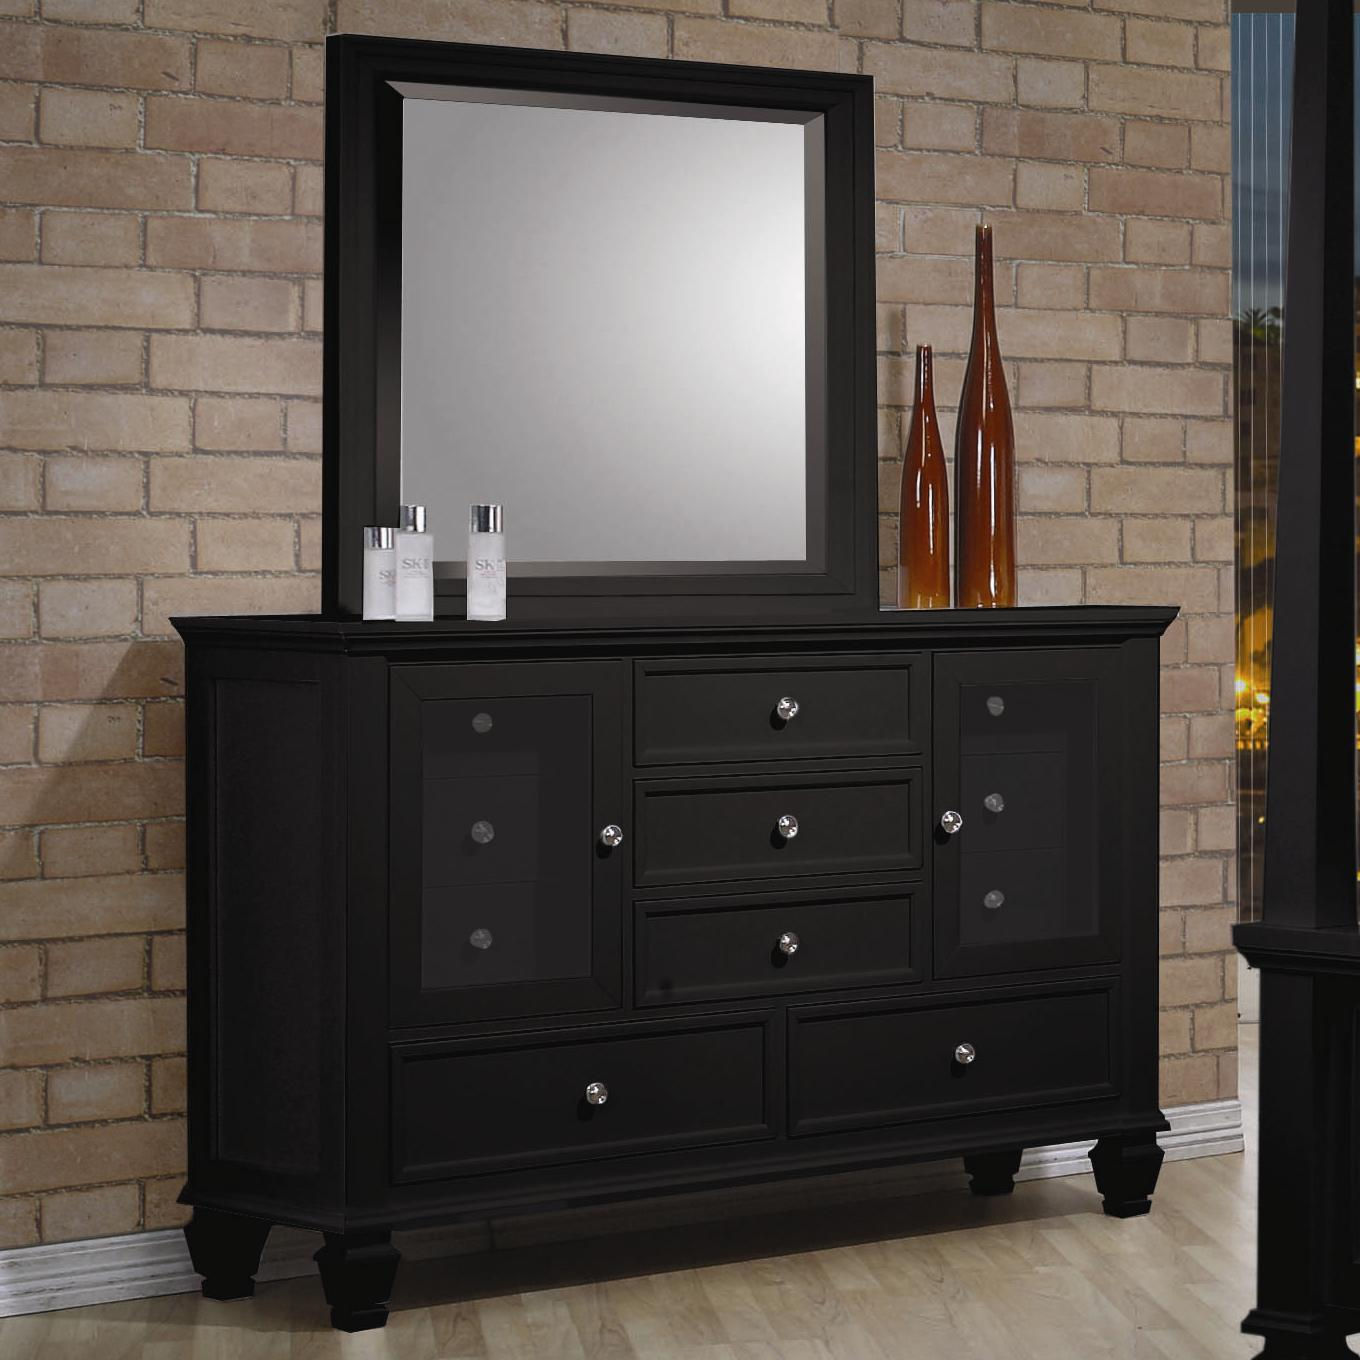 Sandy Beach Dresser and Mirror by Coaster at Rooms for Less